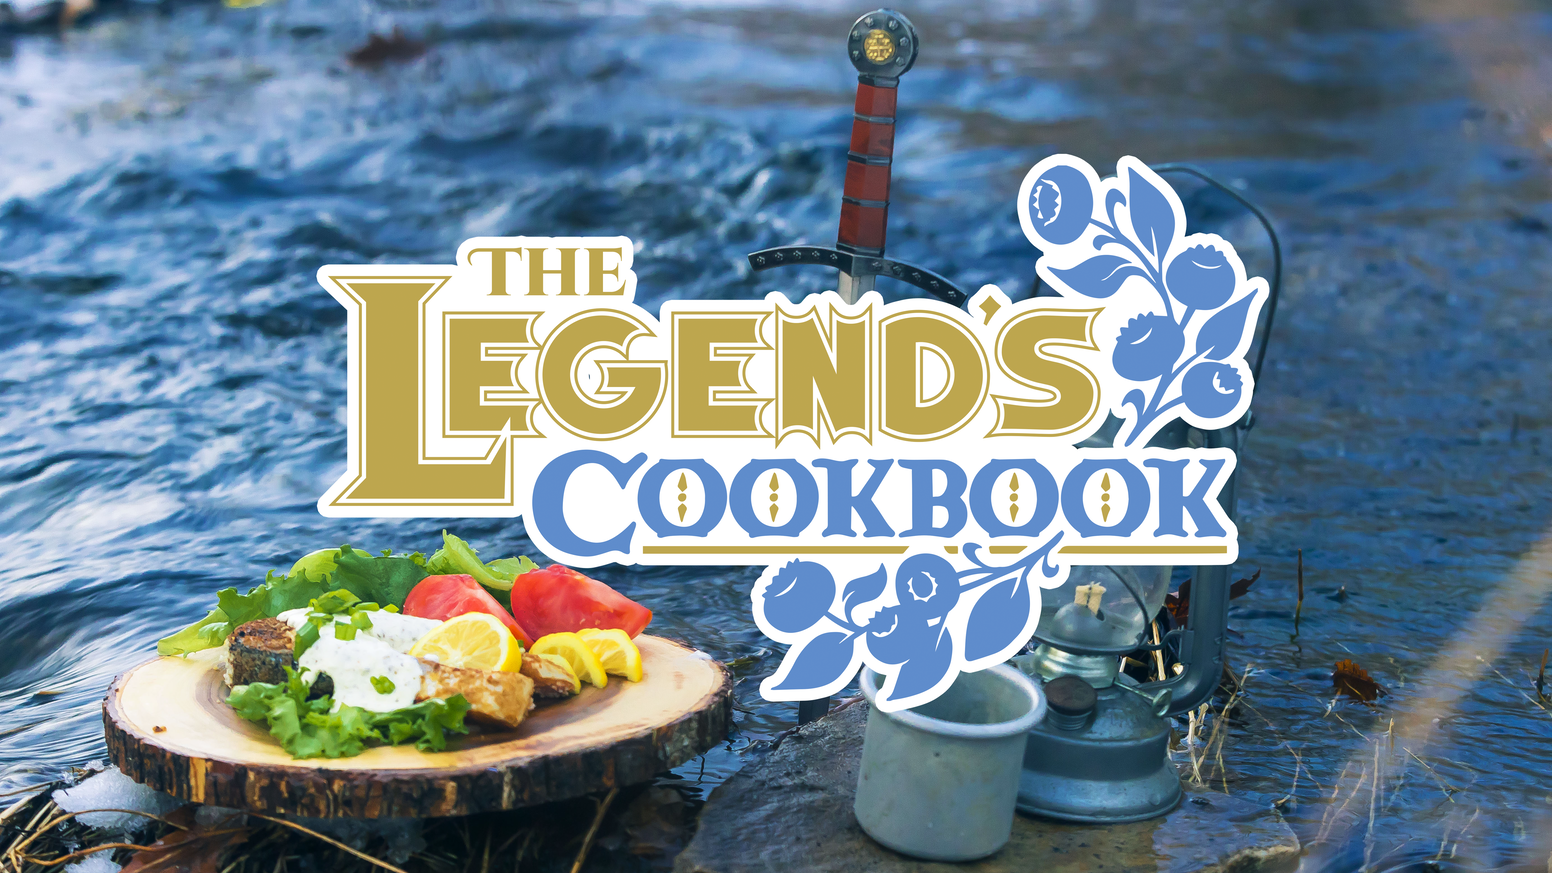 A cookbook filled with beautiful art, original recipes and stunning photos. A guide to legendary food that will take your breath away.